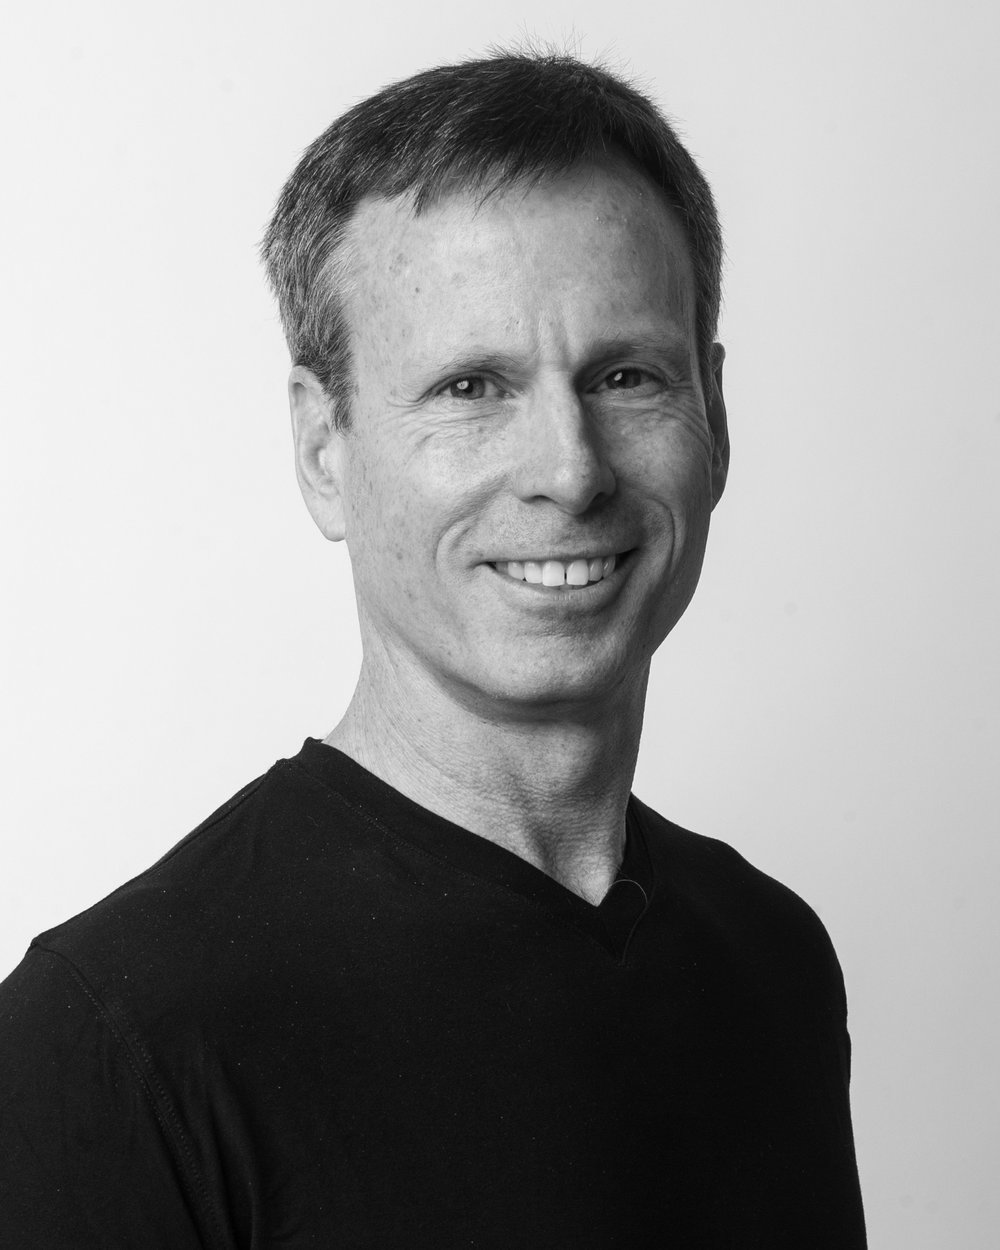 TOM STAGGS, FORMER COO AND CFO OF DISNEY   Tom became executive vice president and CFO of Disney in 1998. As CFO, Tom was instrumental in purchasing Pixar for $7.4 billion in 2006 as well as acquiring Marvel Entertainment for $4 billion in 2009. Tom went on to become COO in 2015. He is now currently a board member of Spotify.